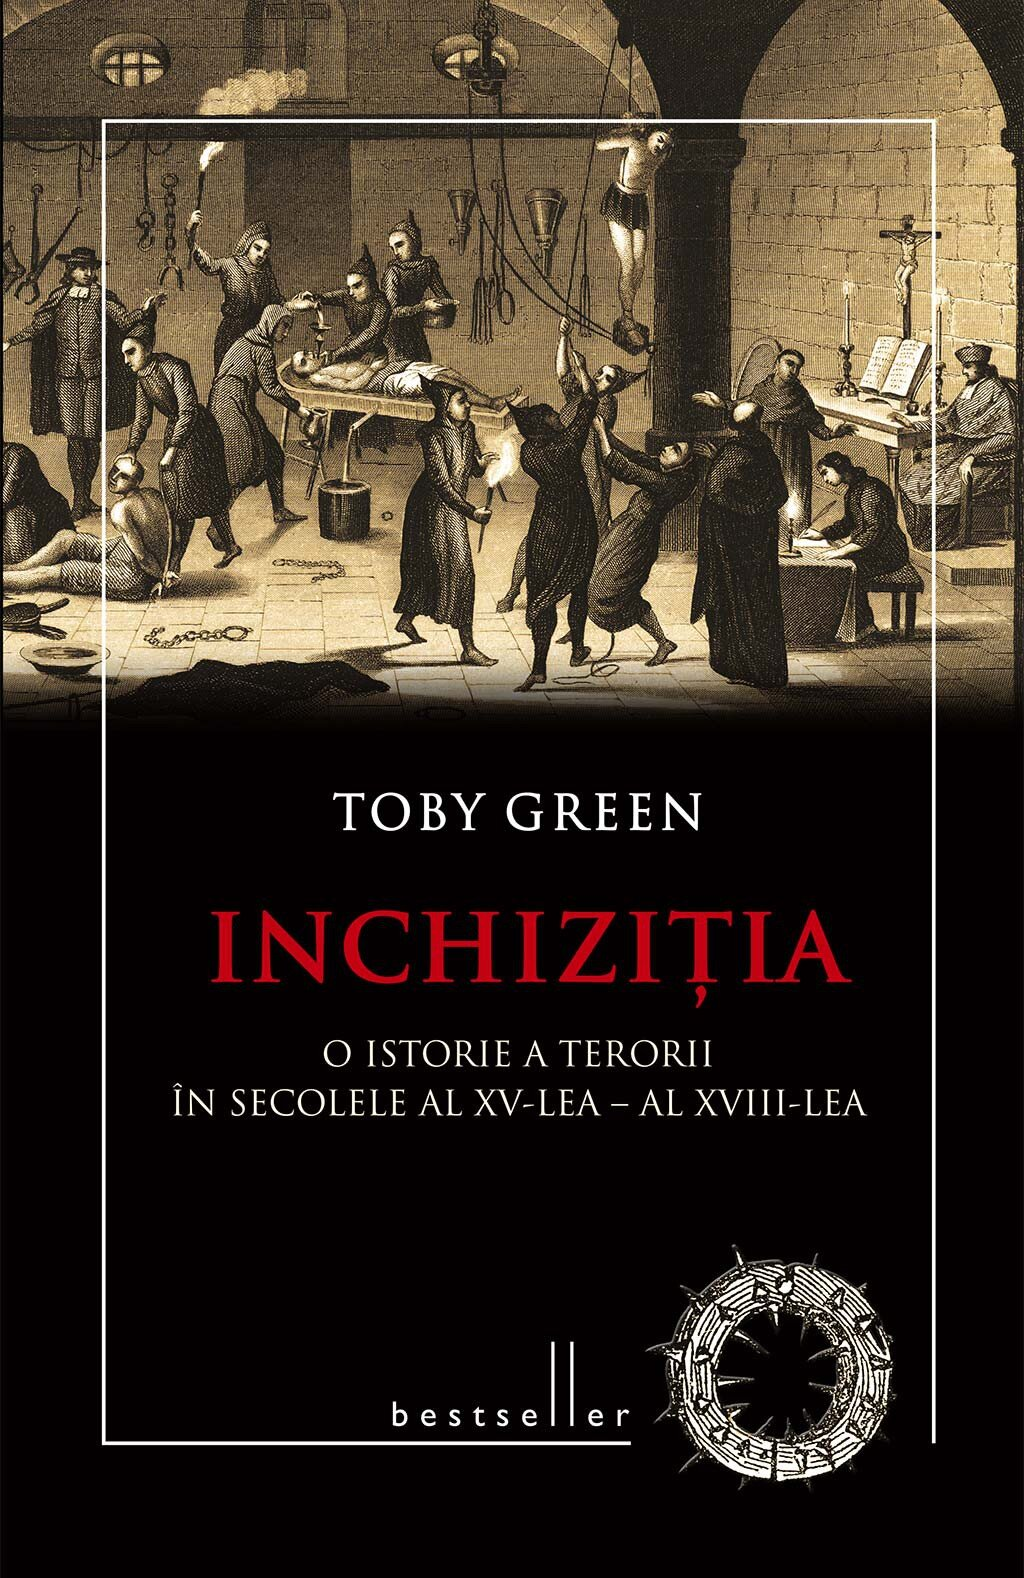 Inchizitia. O istorie a terorii in secolele al XV-lea - al XVIII-lea (eBook)